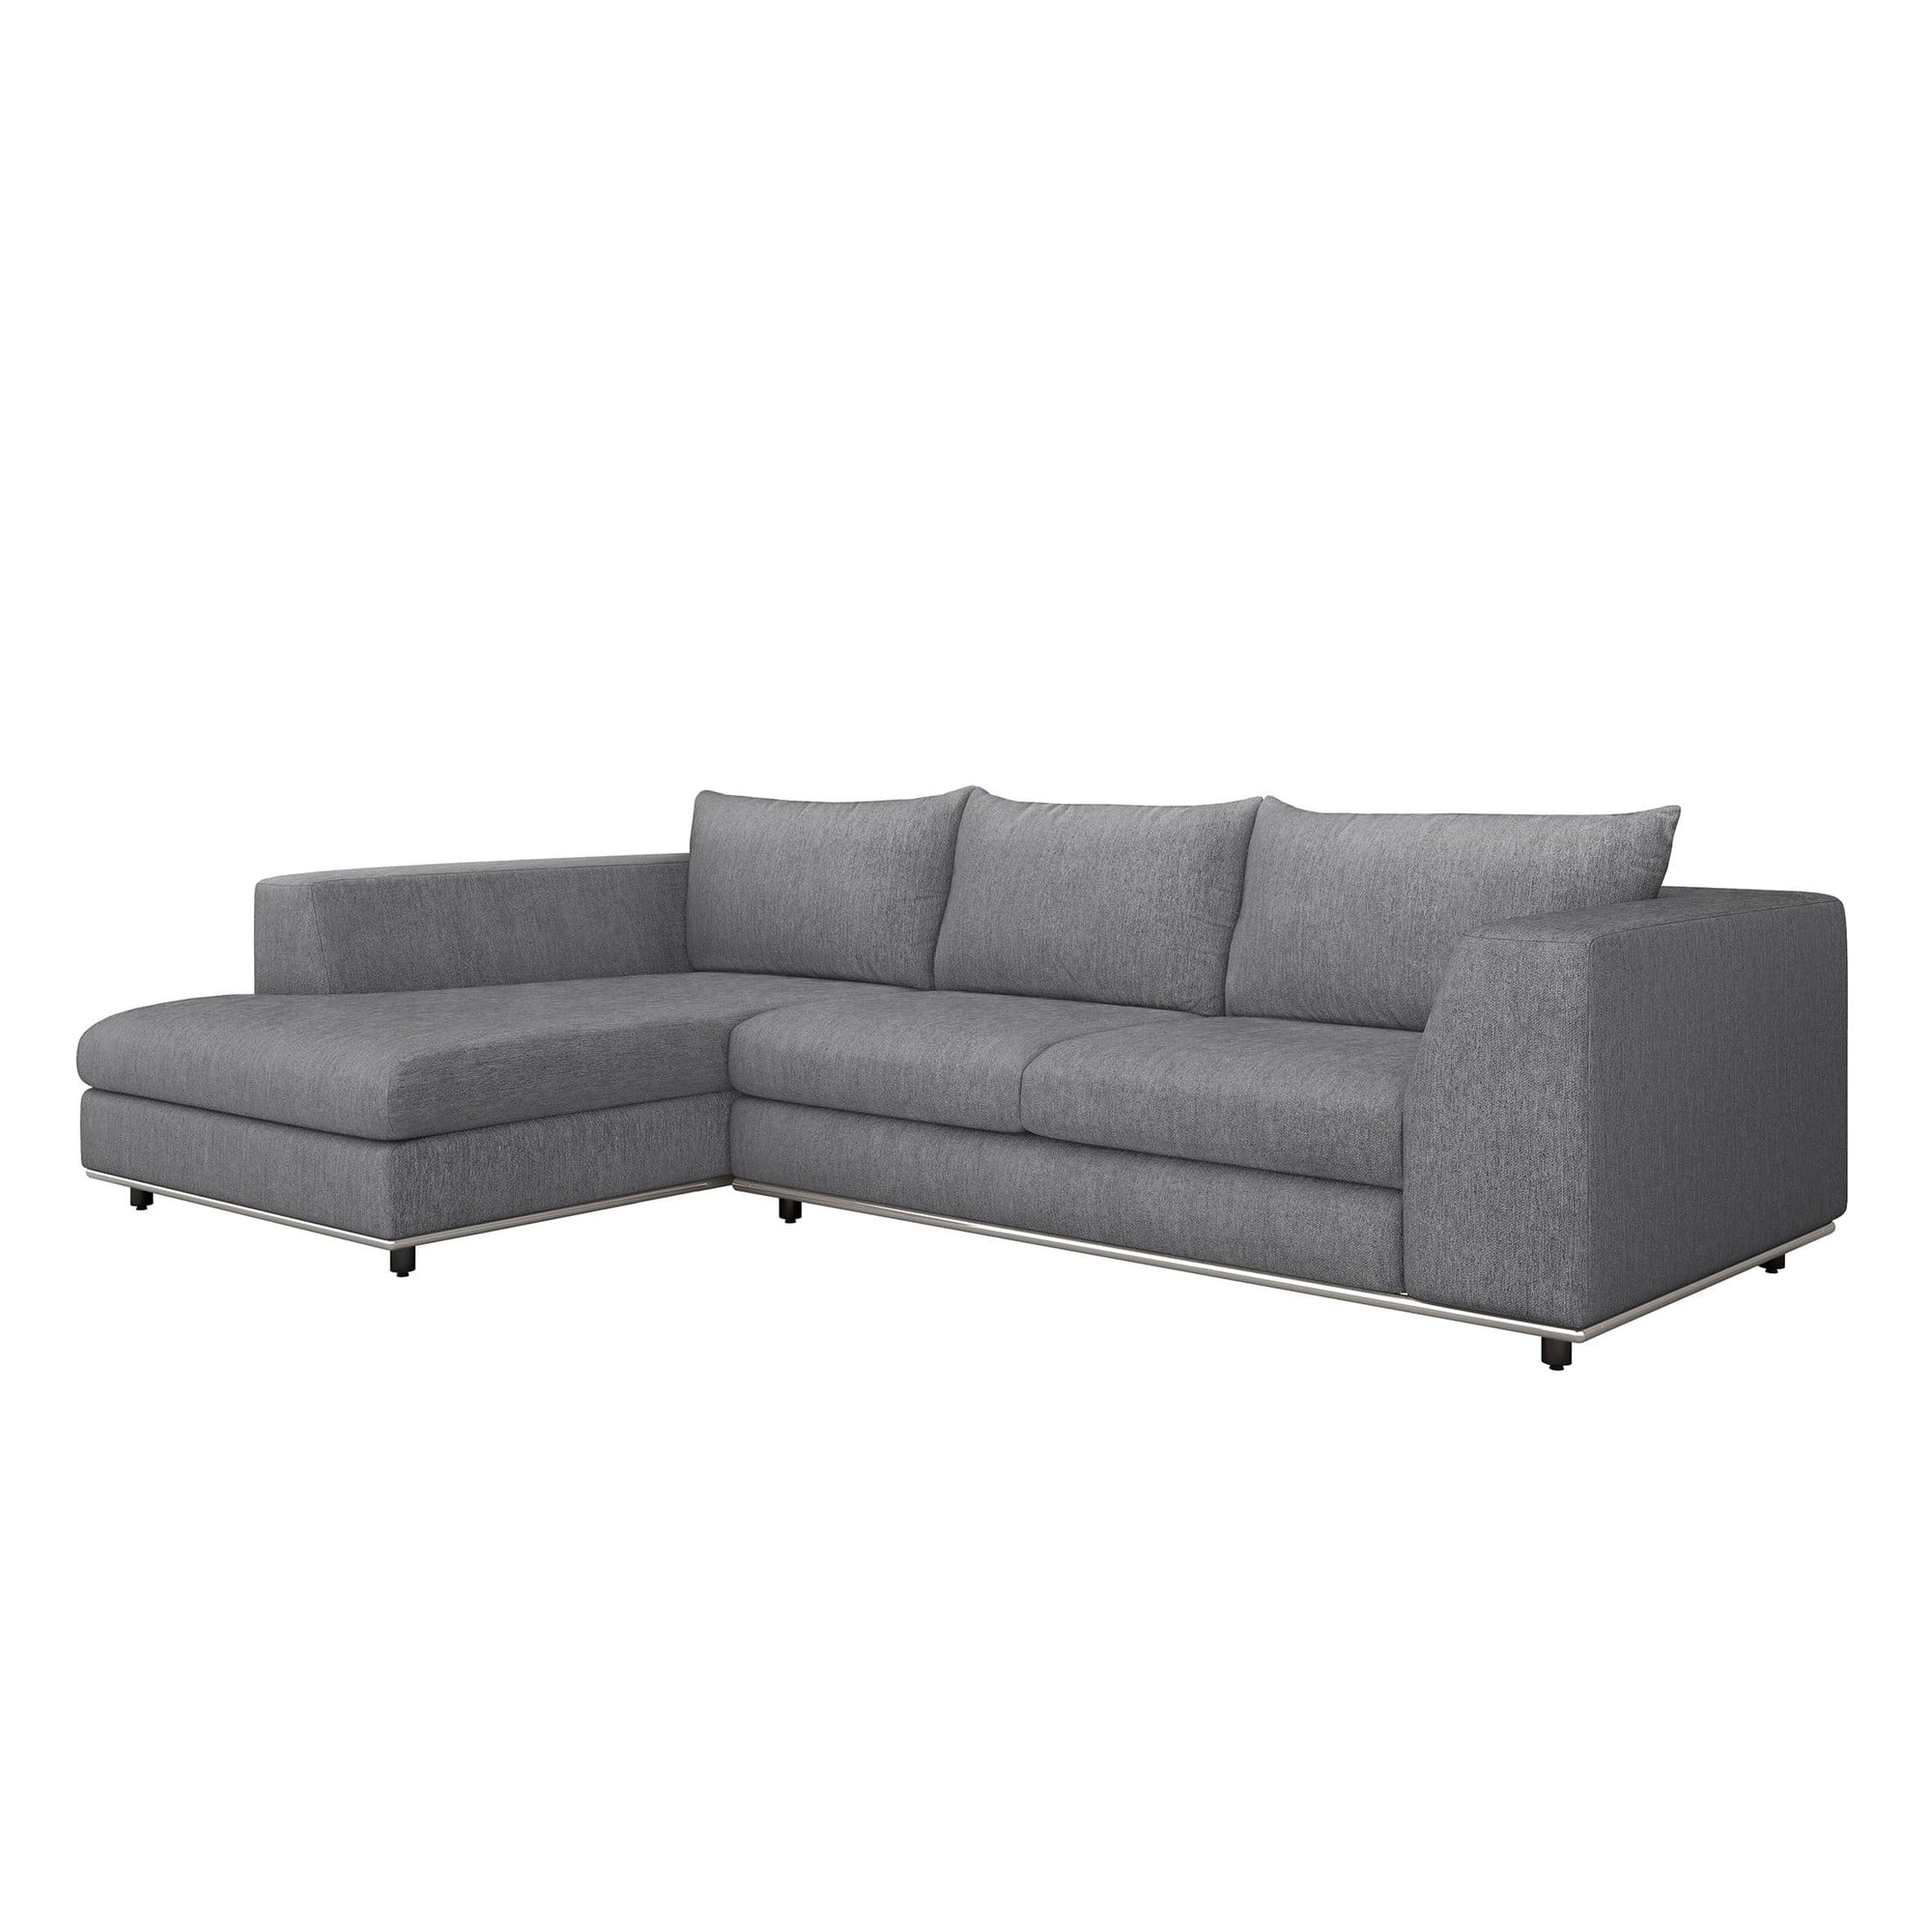 Interlude Home Interlude Home Comodo Left Chaise 2 Piece Sectional - Dark Gray 199018-3